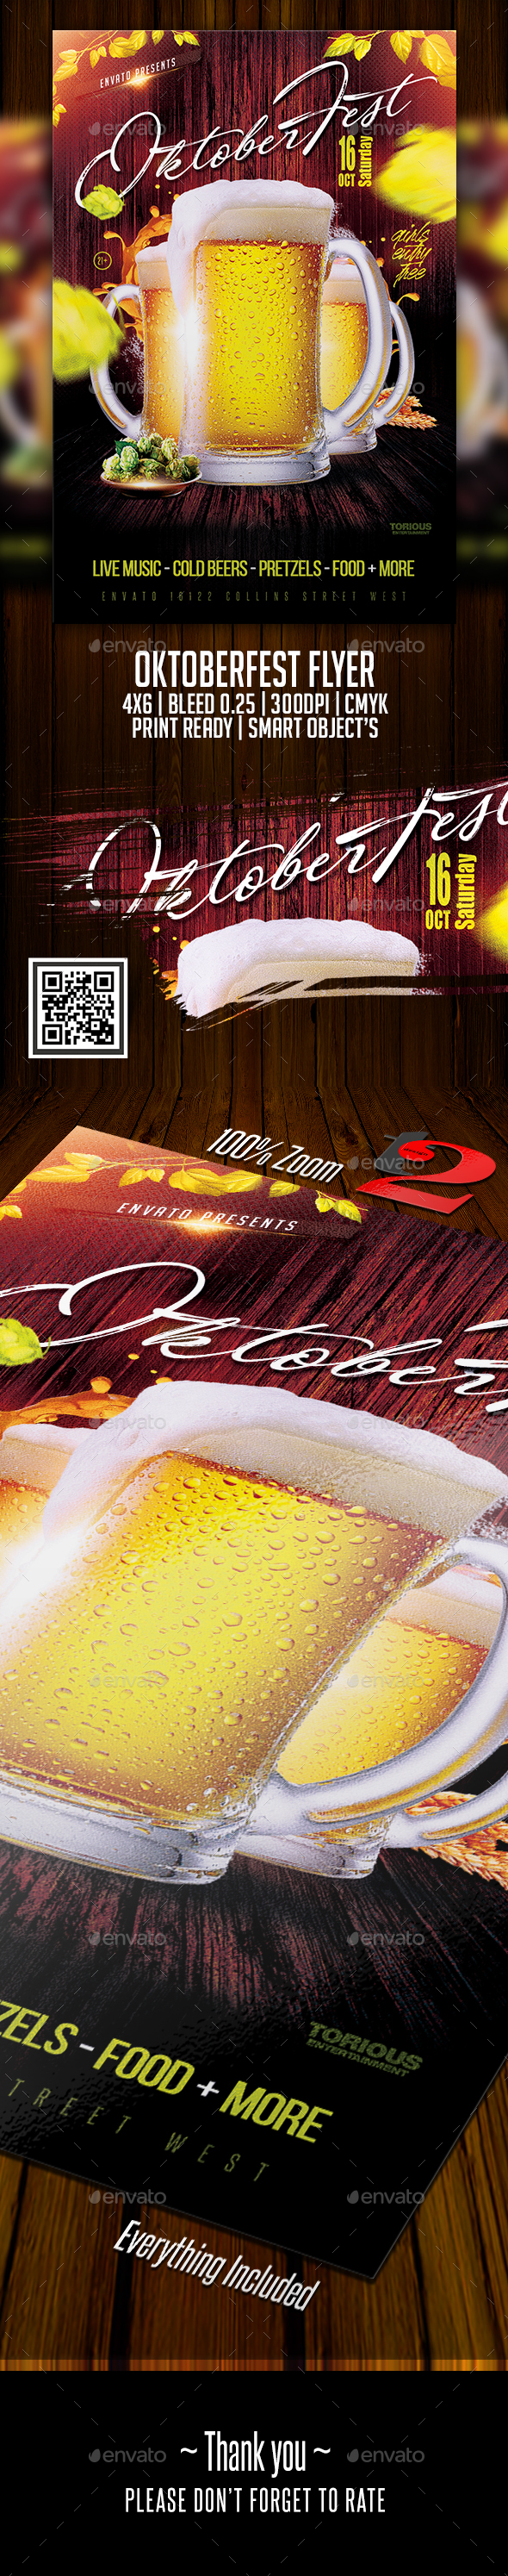 Oktoberfest Flyer Template - Holidays Events